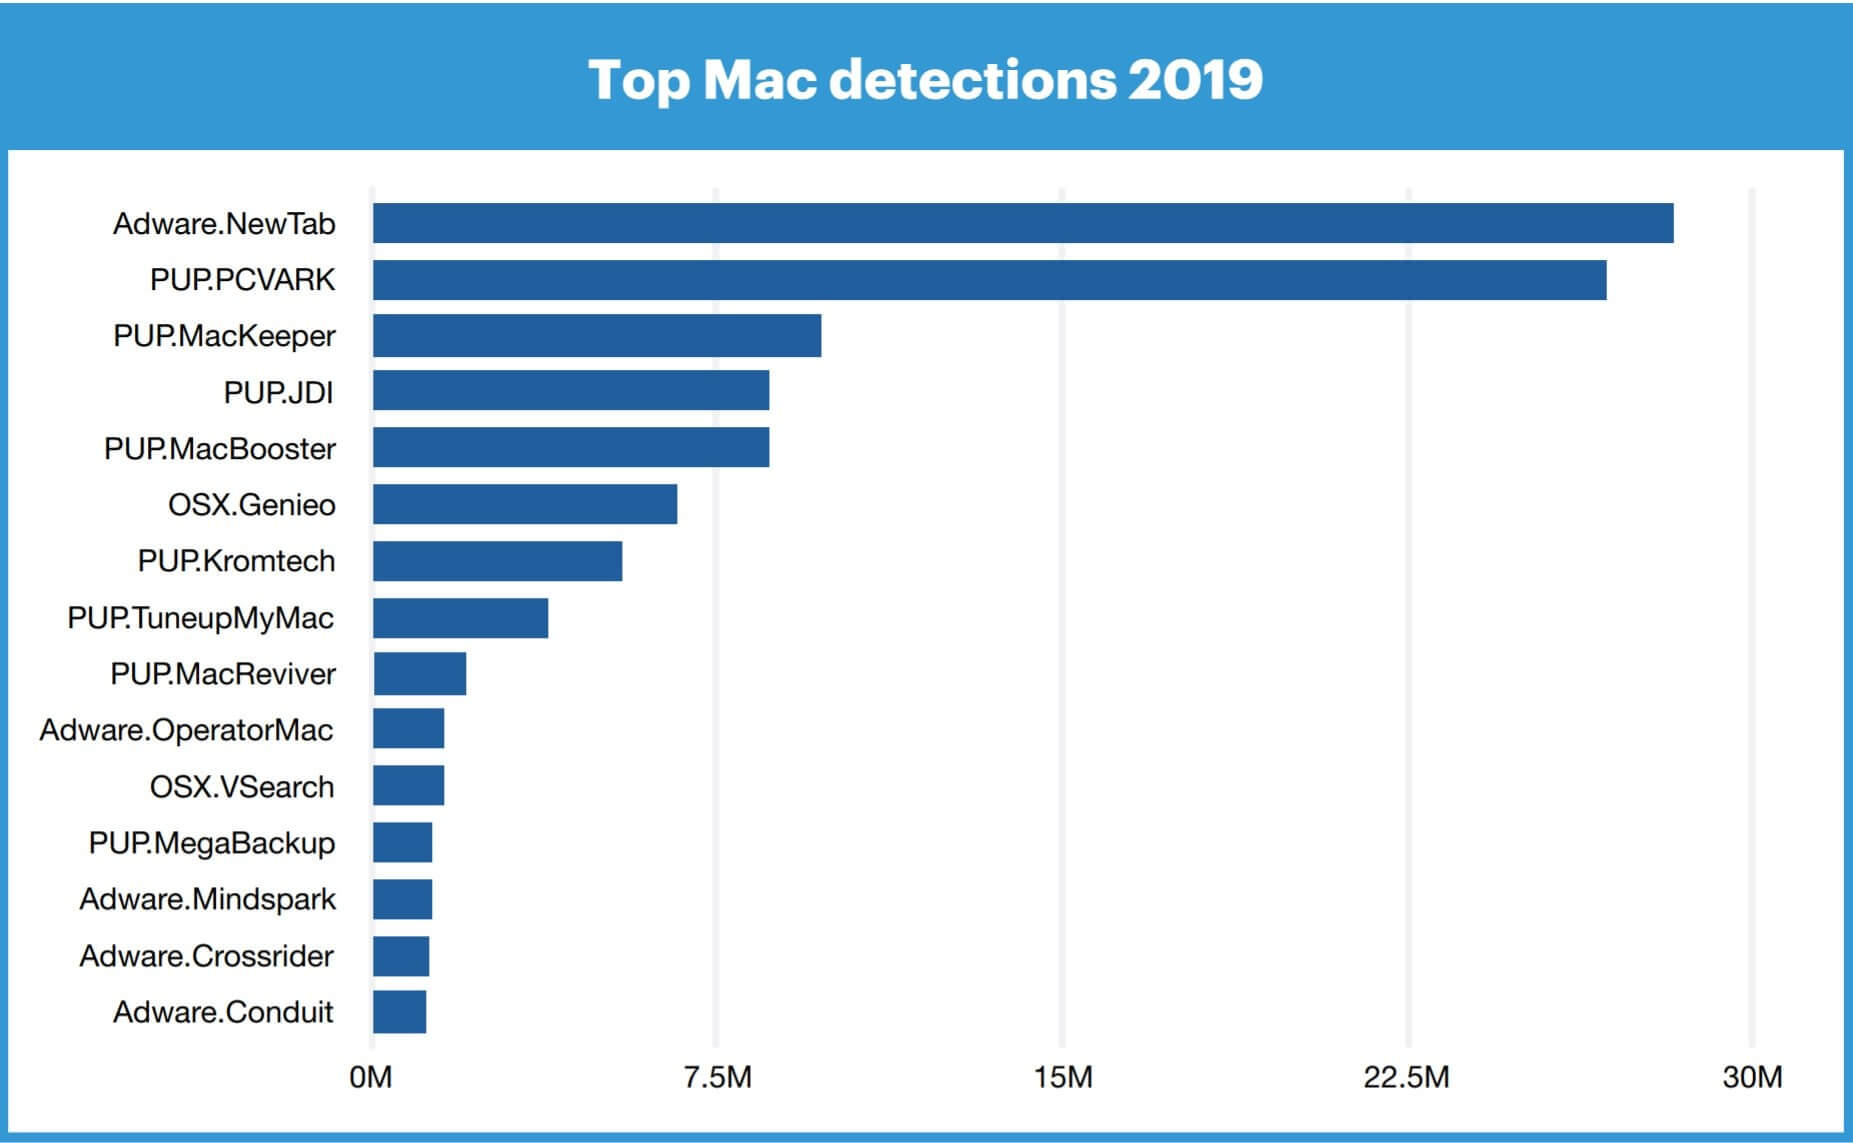 Mac threats rise more than Windows,